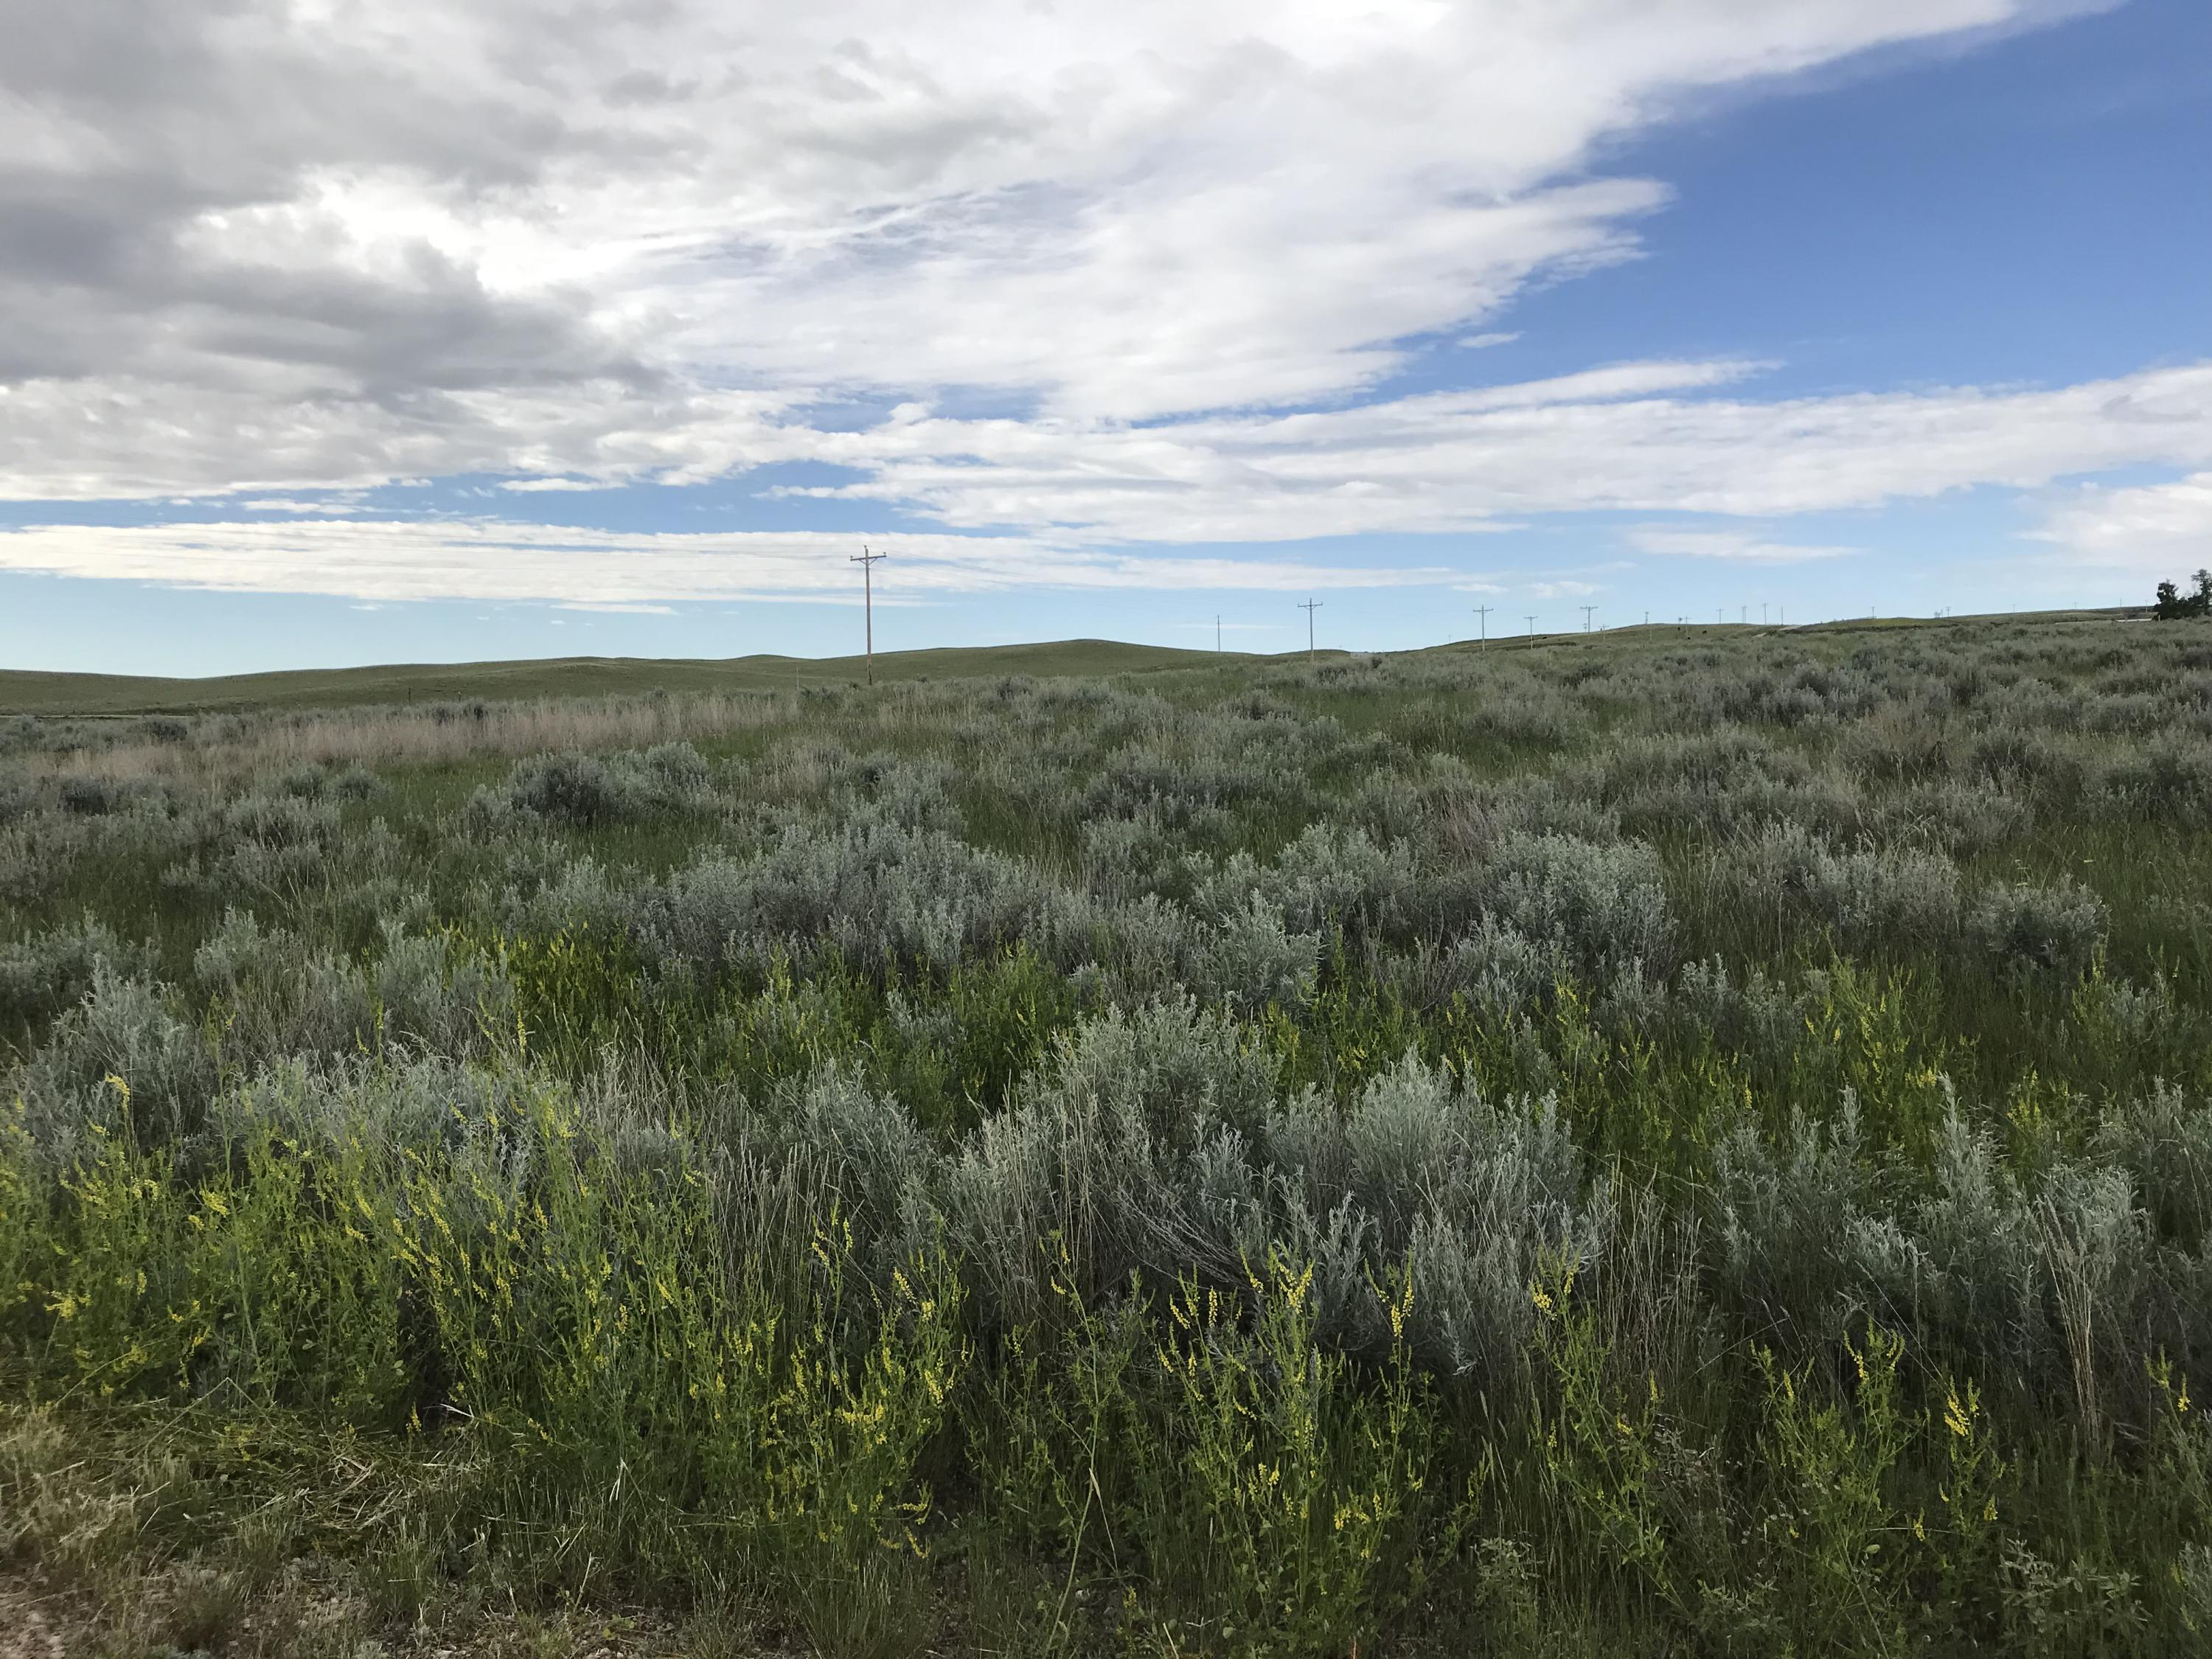 Lot 8 TBD, Buffalo, Wyoming 82834, ,Building Site,For Sale,TBD,17-704